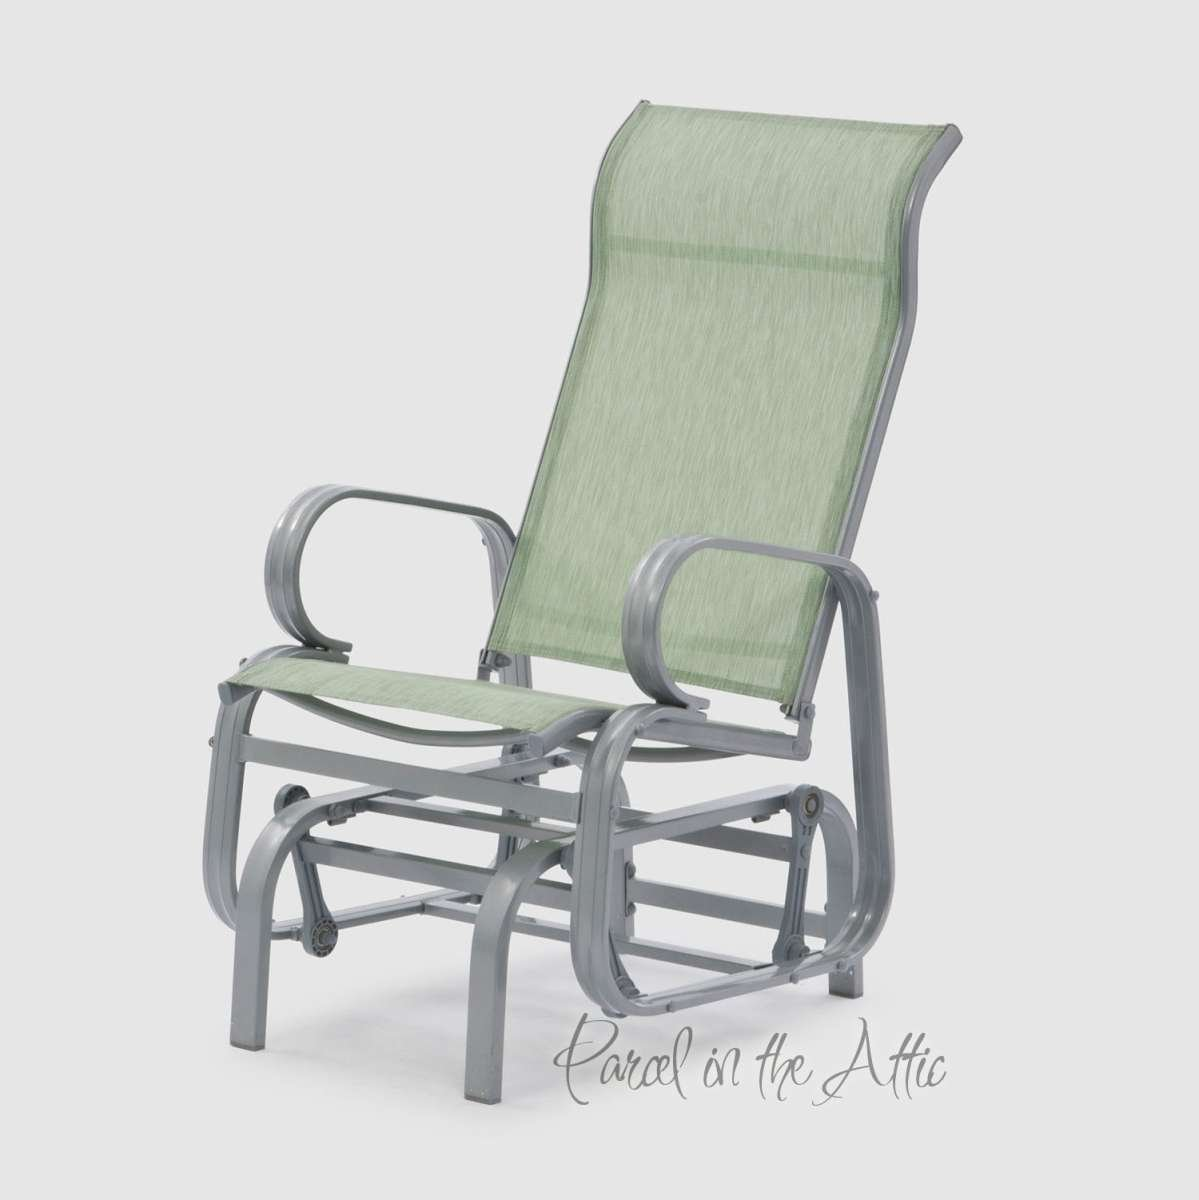 Outdoor Single Glider Chair Seat Swing Relaxer Steel Textilene Garden Patio Outdoor in Avocado Parcel in the Attic